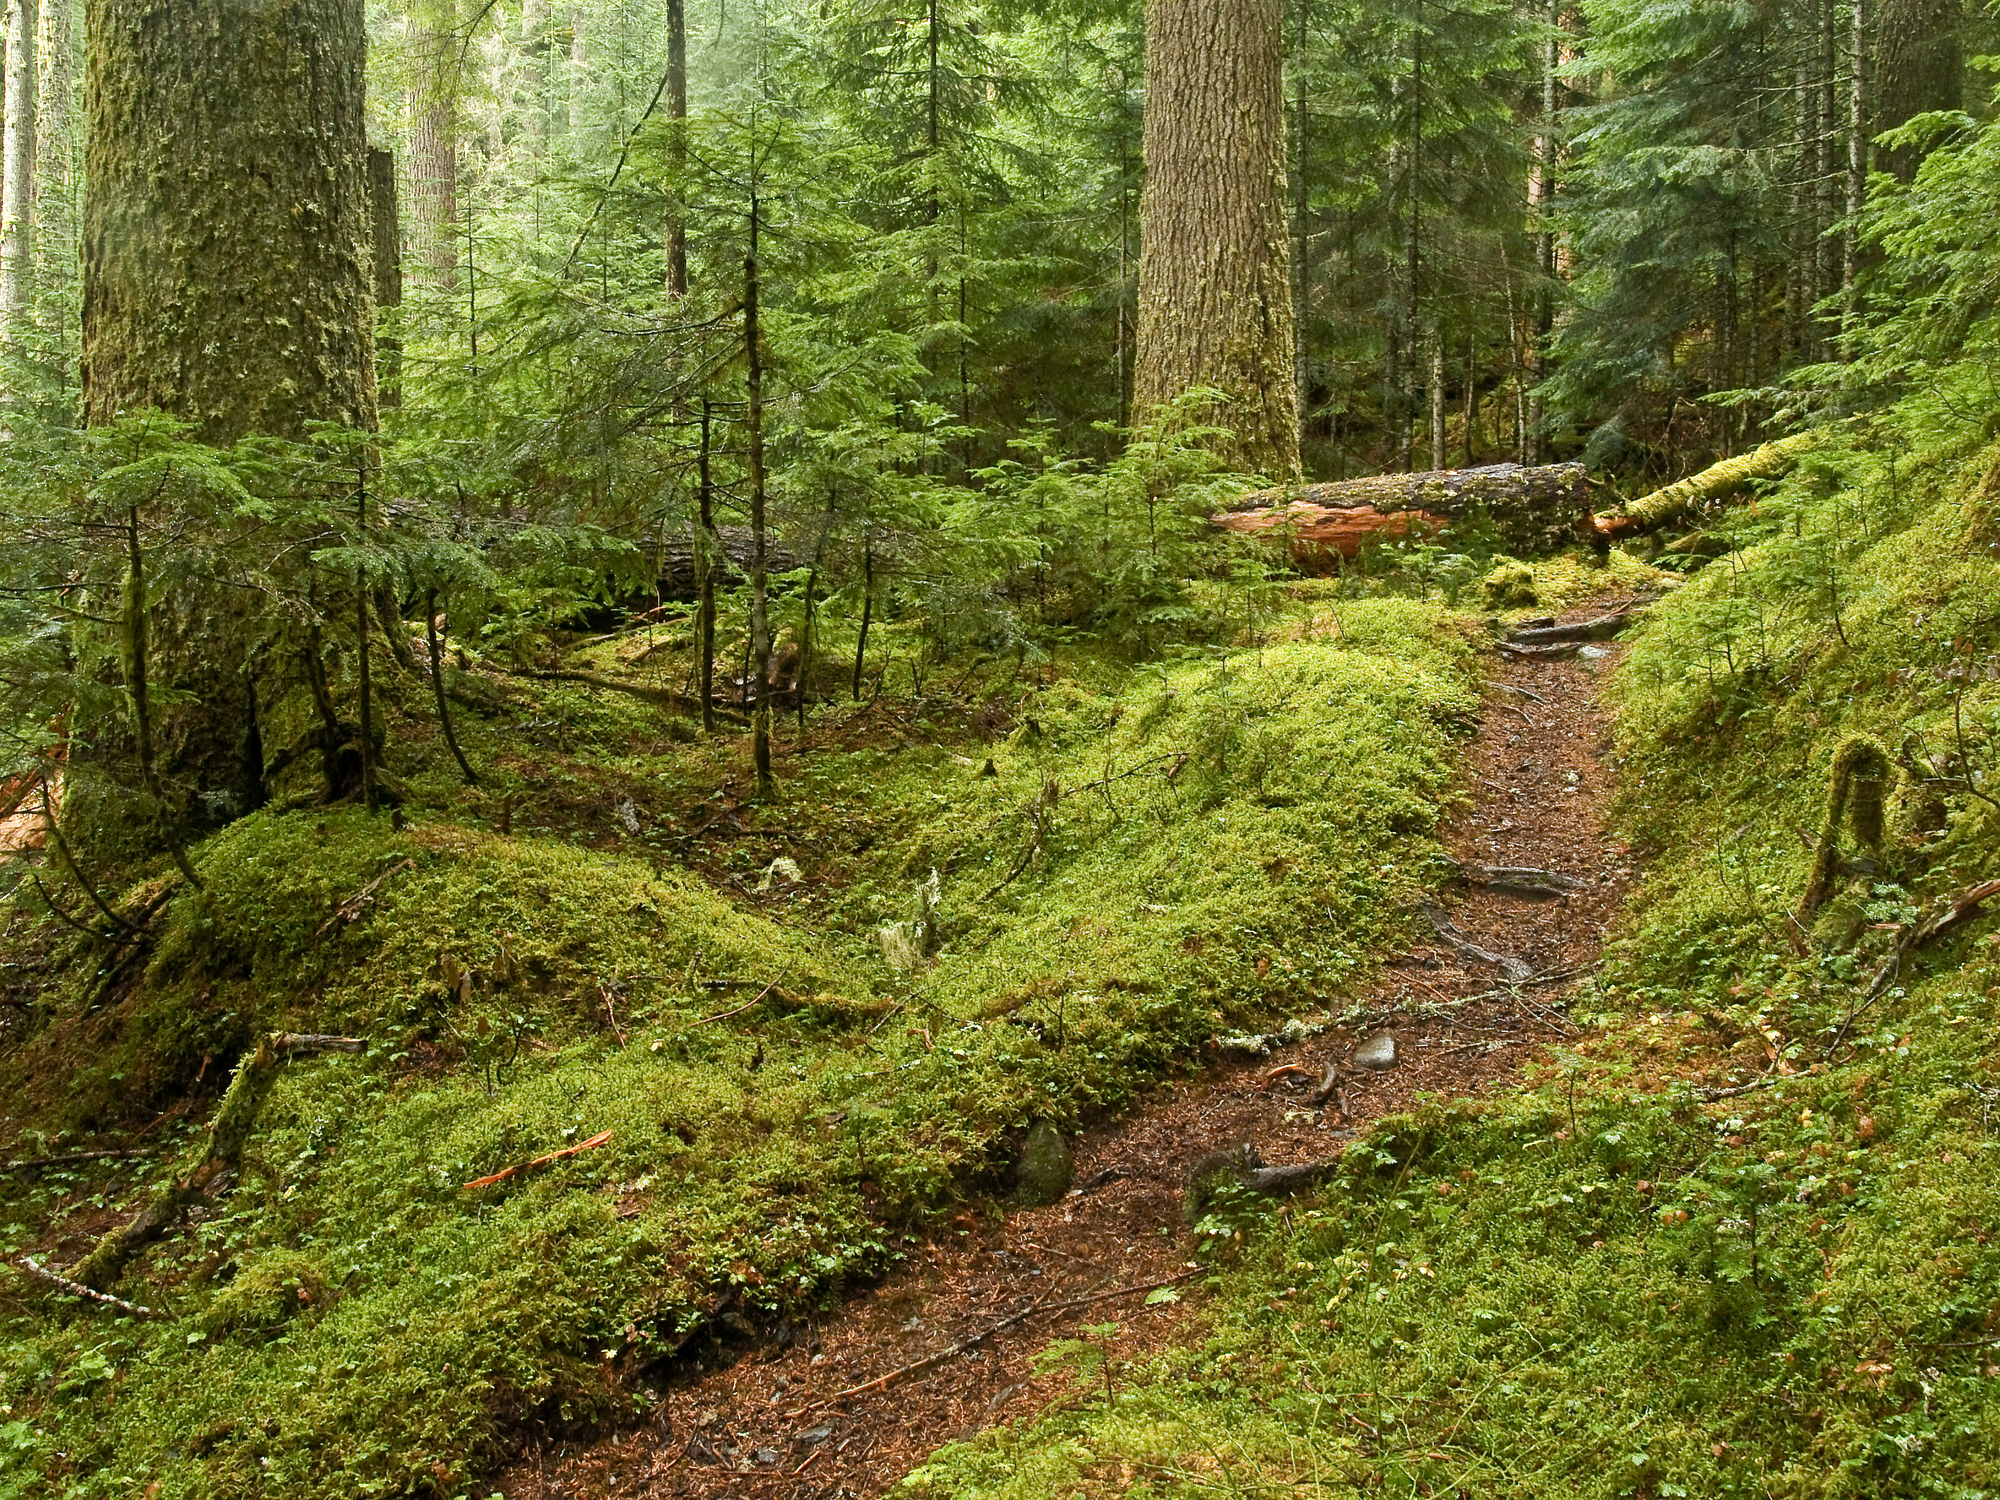 Forest Bathing: Bringing shinrin-yoku to British Columbia